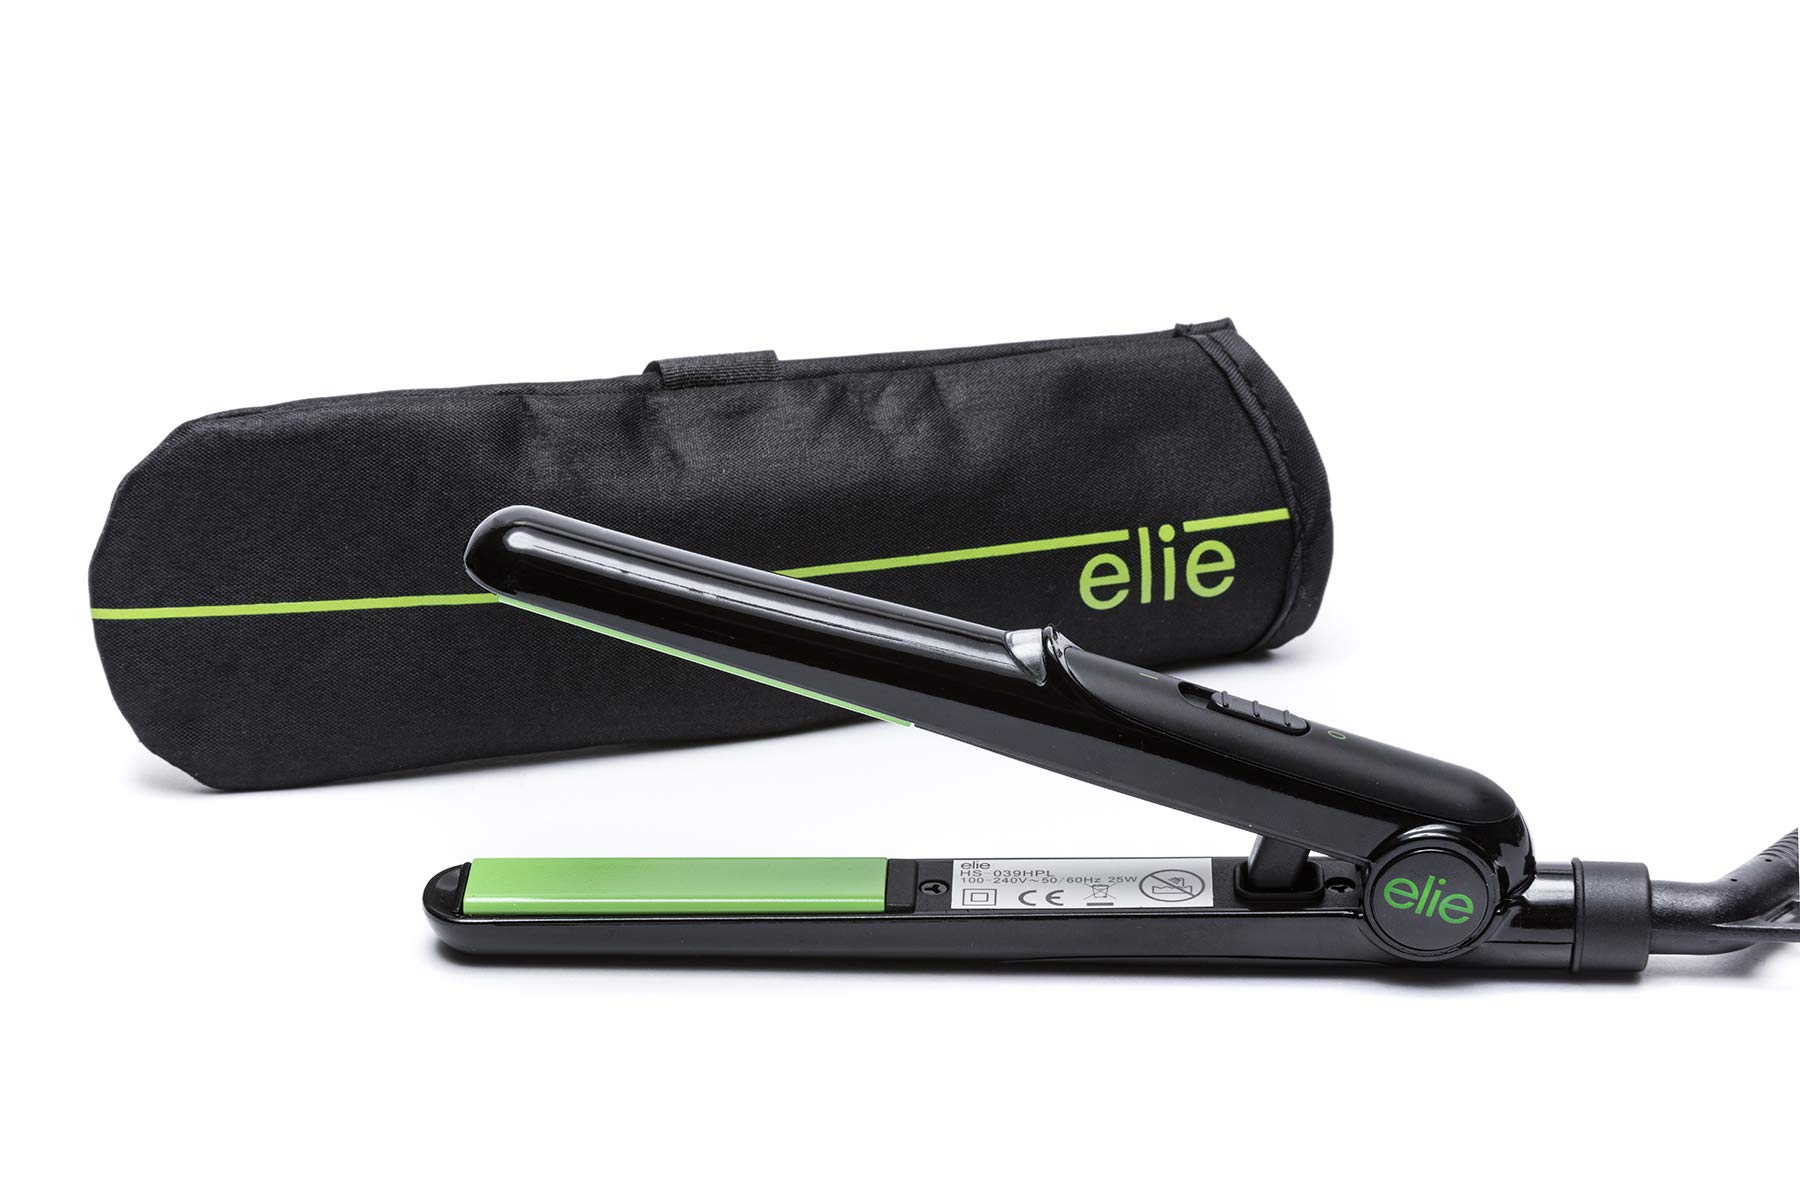 elie HS 039 Mini Straightener Dual Voltage for Worldwide